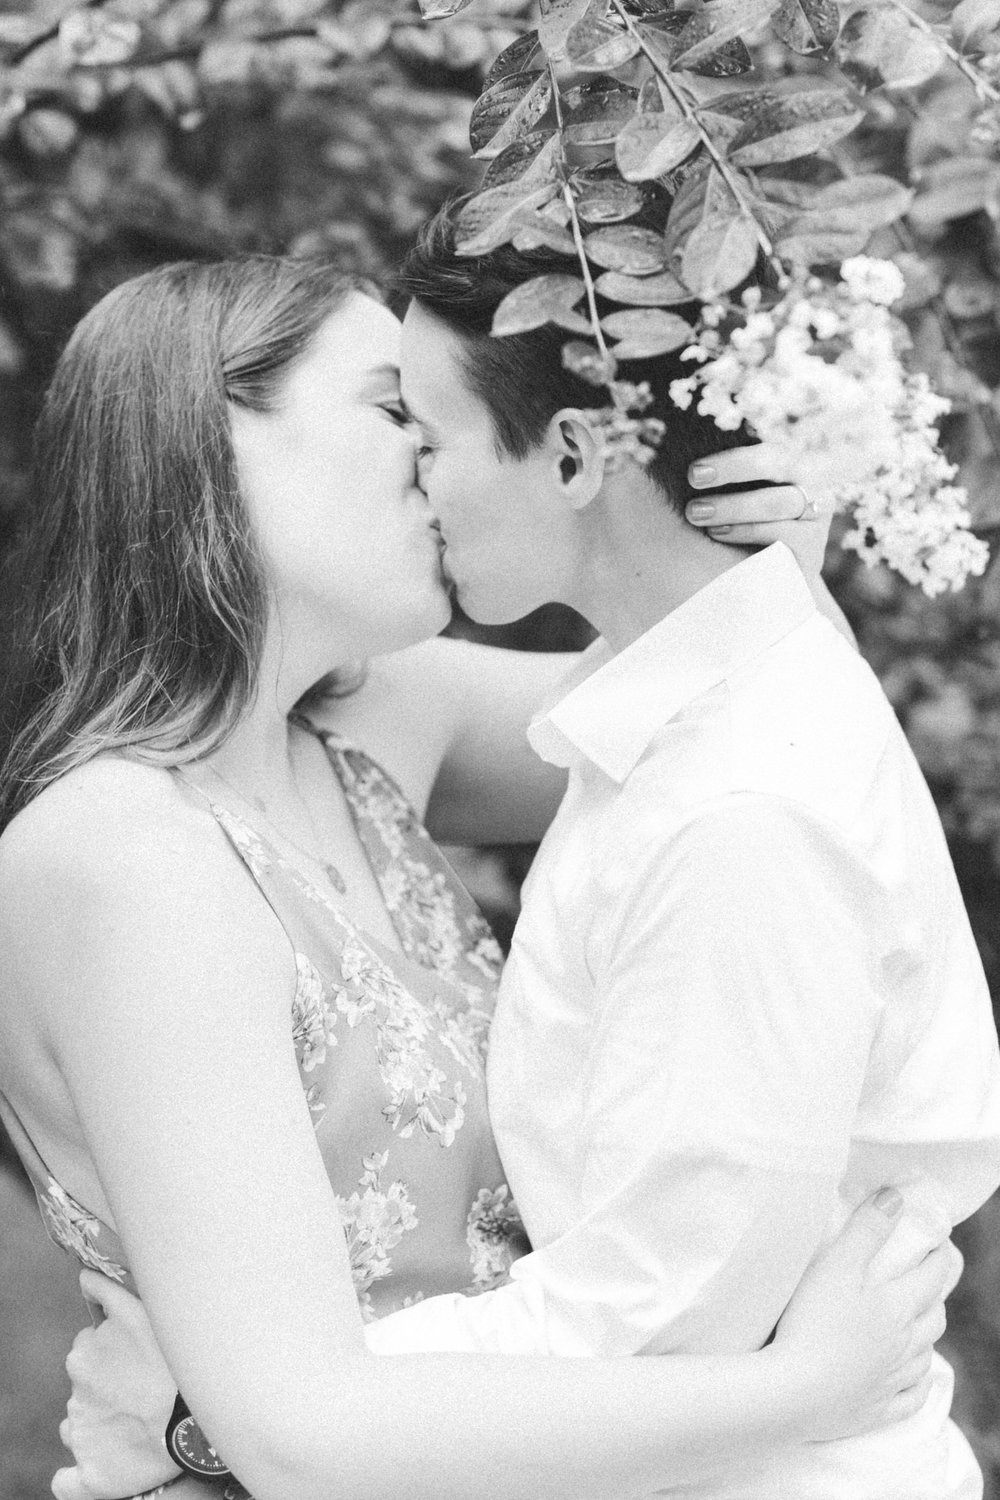 Orlando Natural Forest State Park Engagement Photos- Romantic LGBT Engaged Couples photos37.jpg